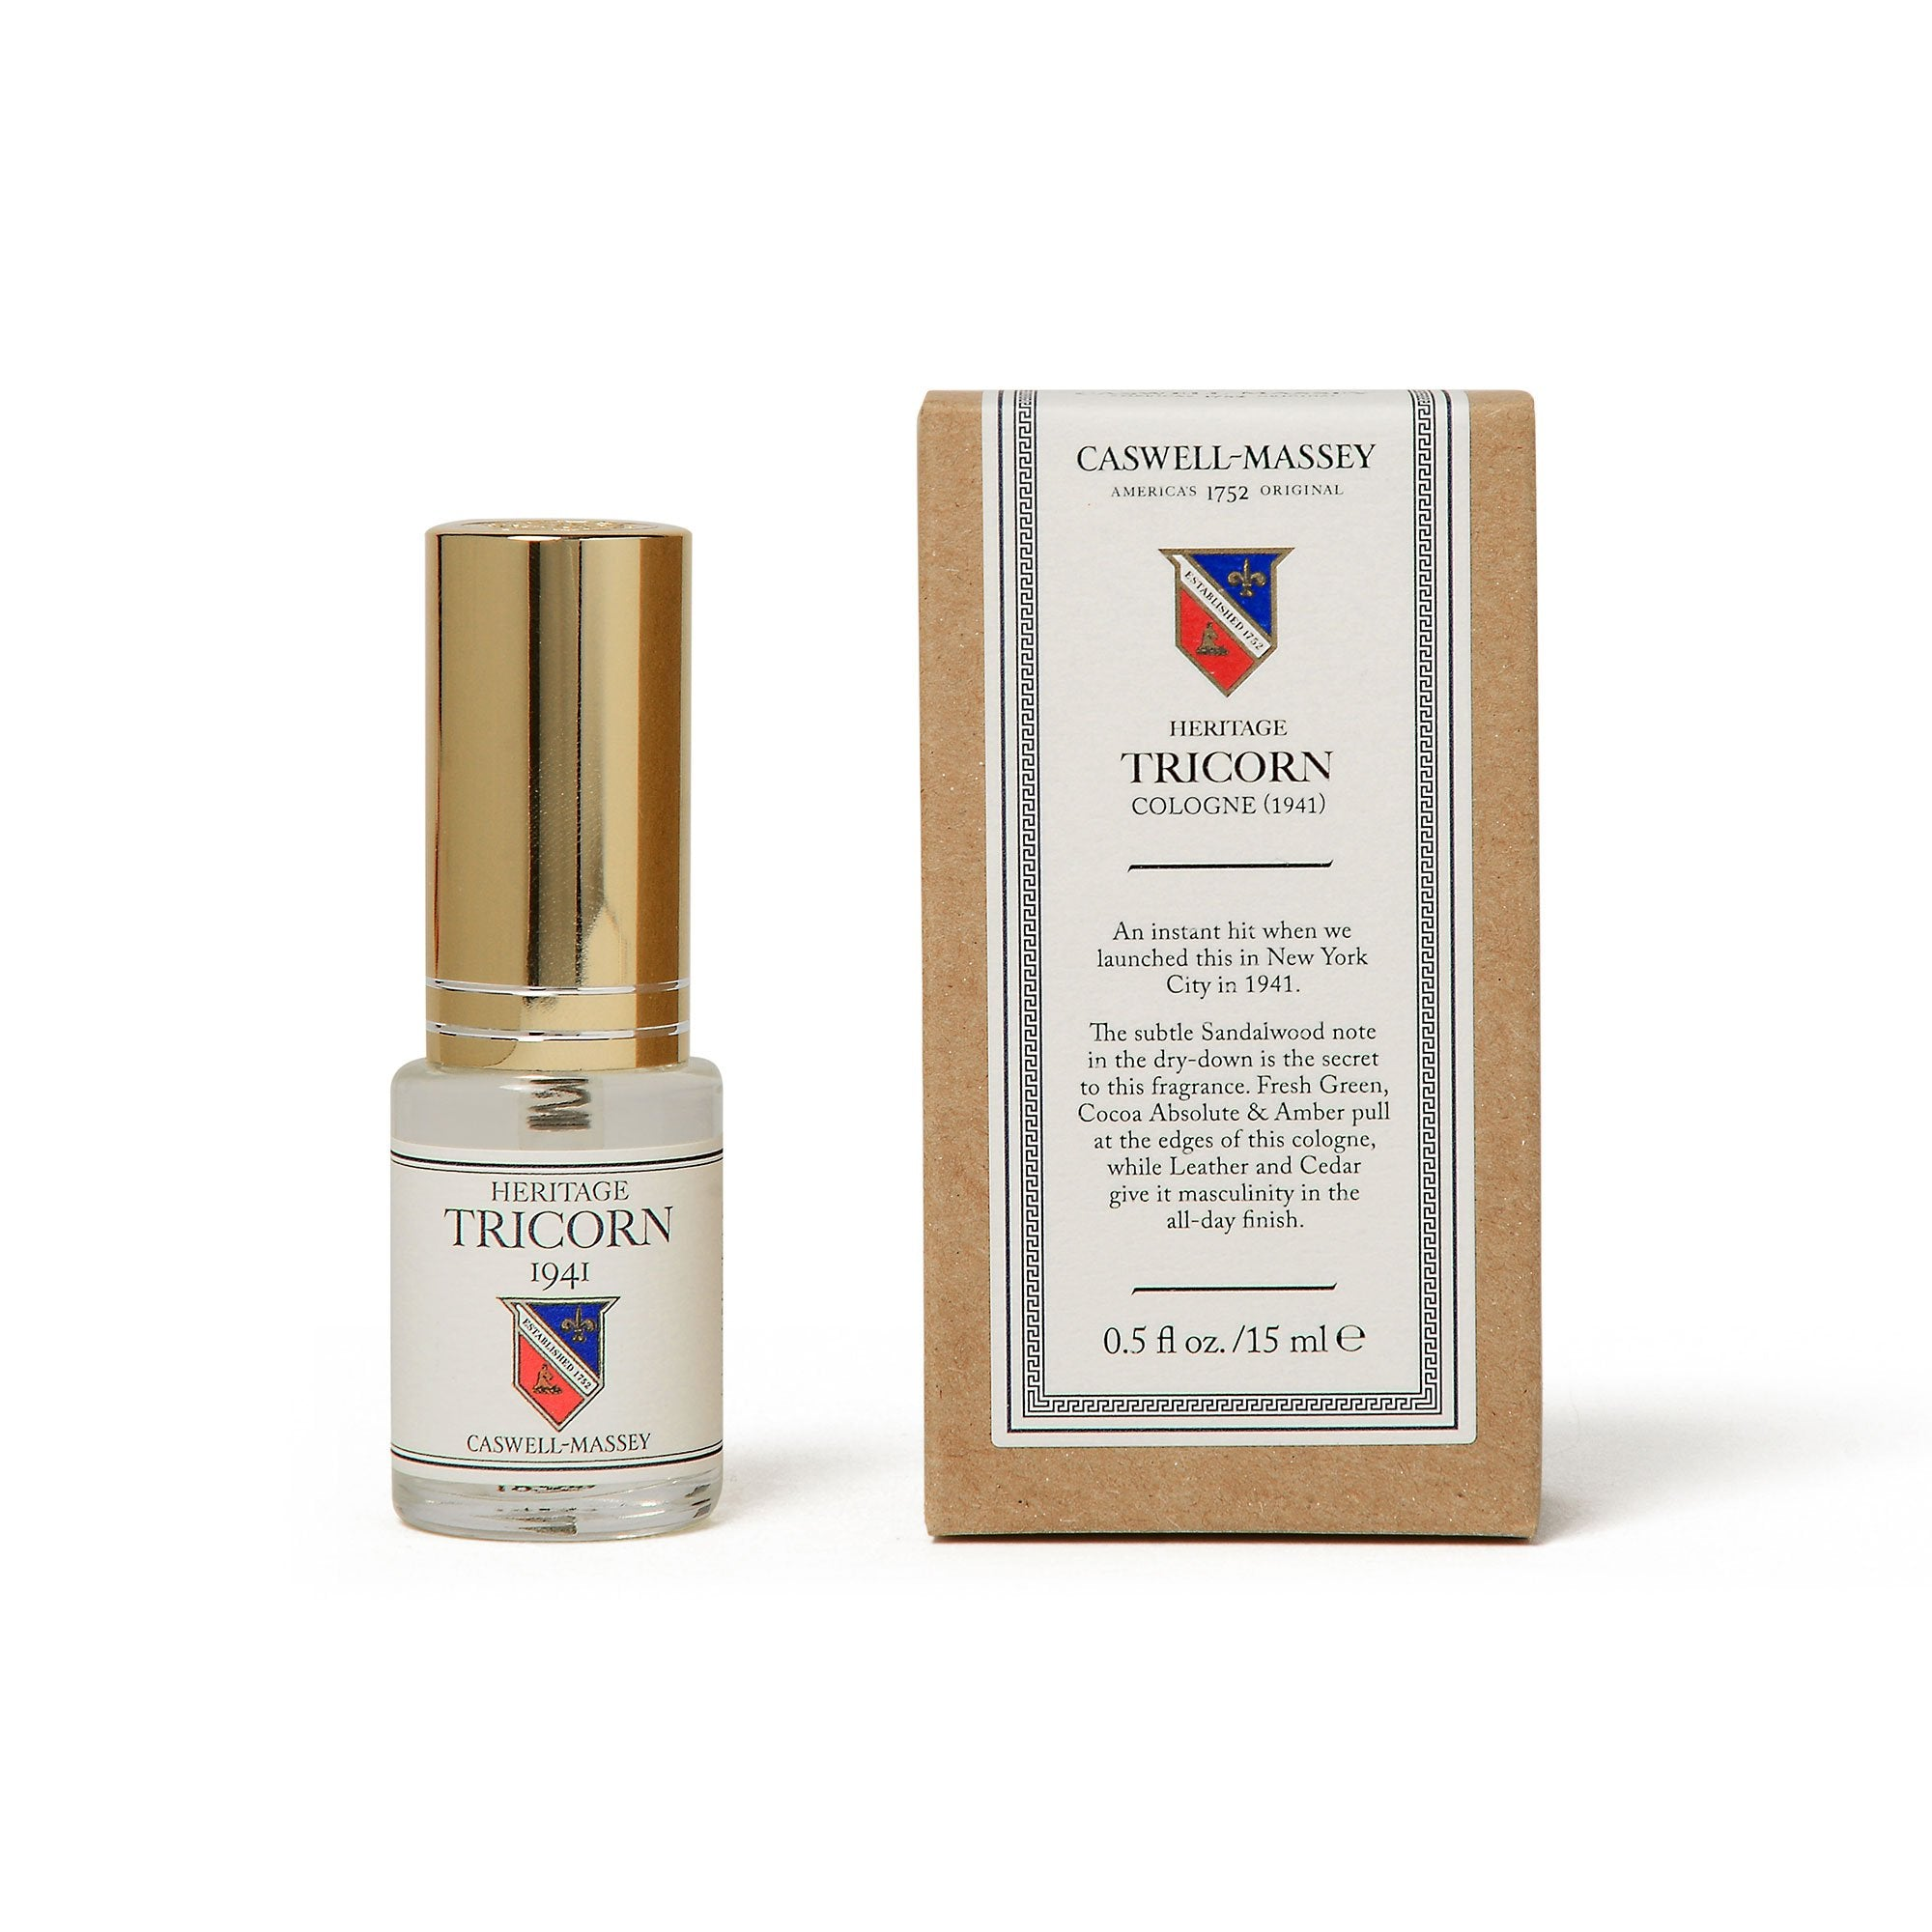 Heritage Tricorn 15ML Travel Cologne